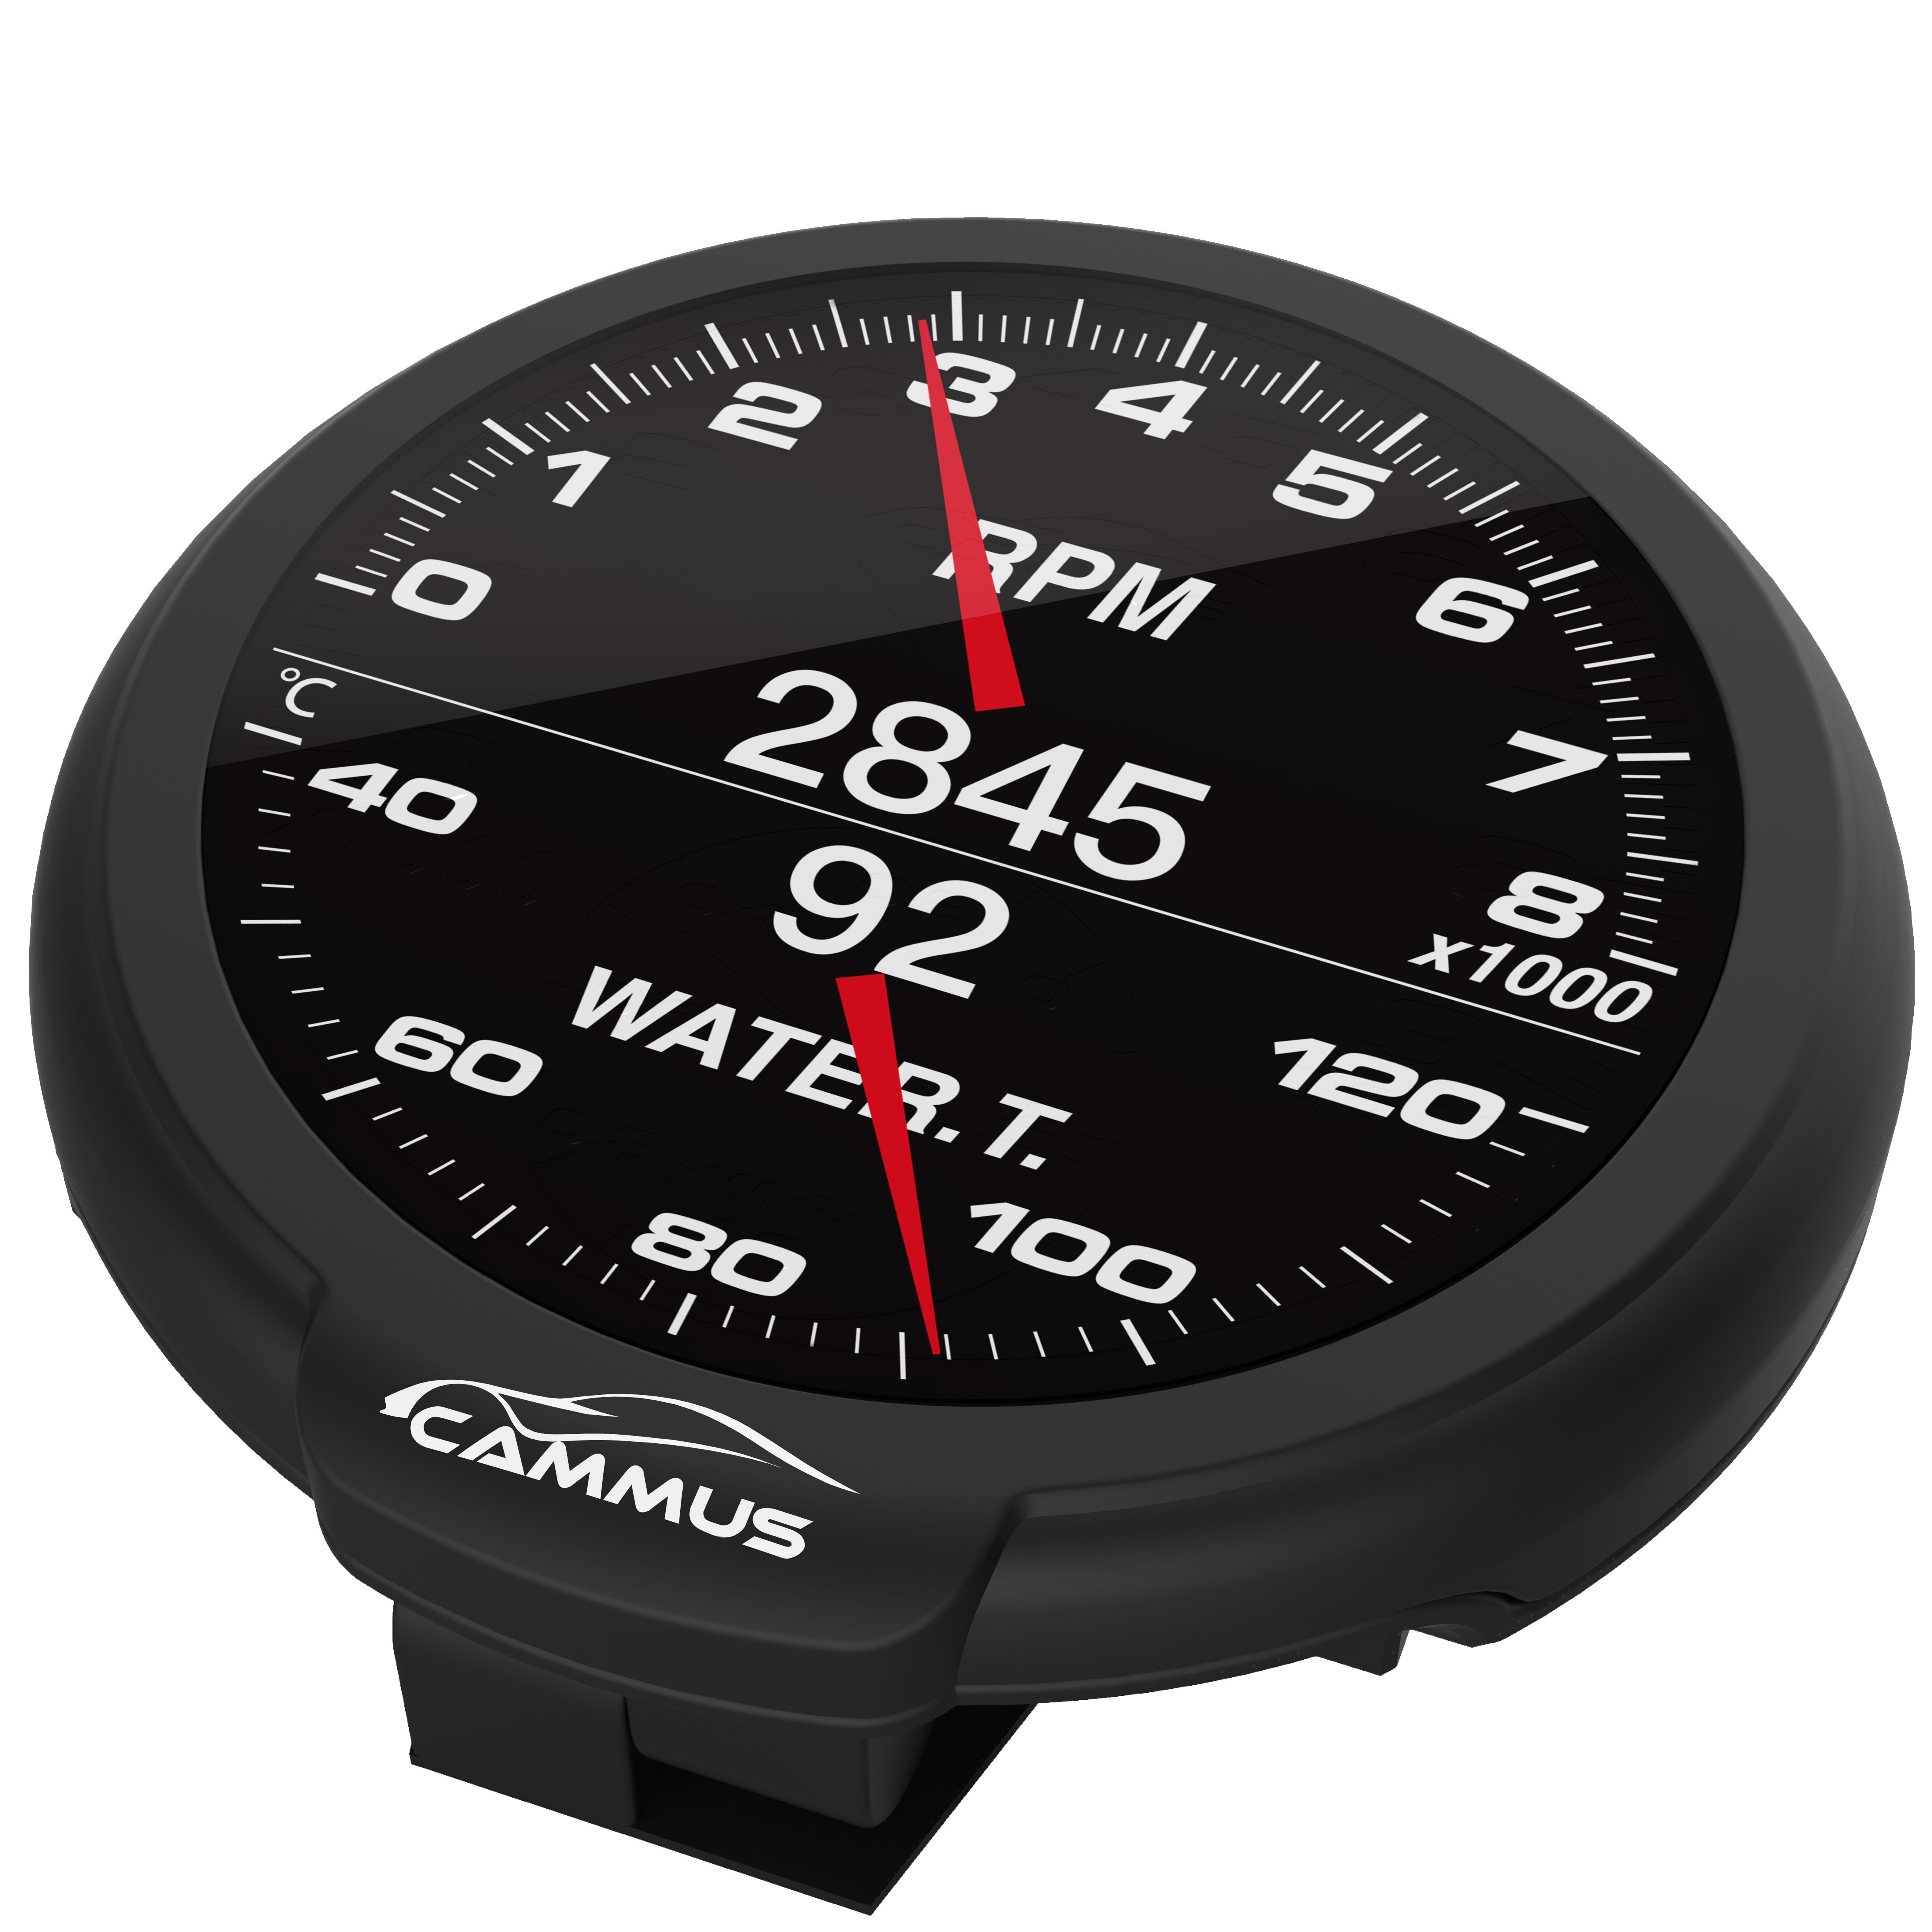 CAMMUS small size Racing Gauge fits both OBDII and Sensor Oil Temperature, Oil Pressure and Boost, EGT